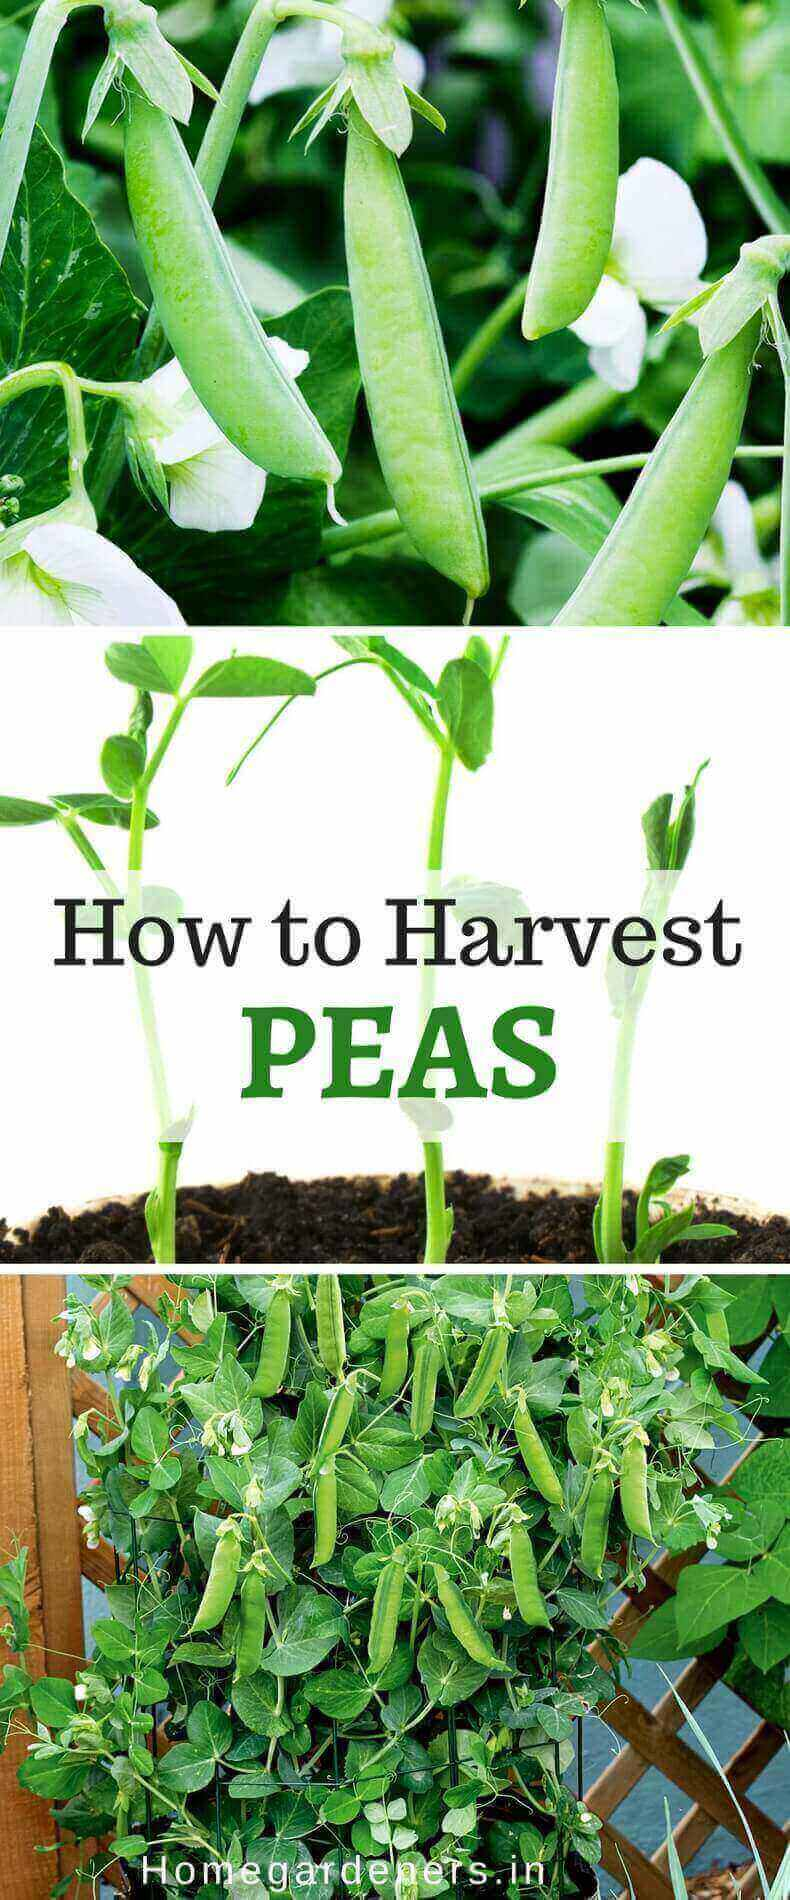 Pisum Sativum - Growing Peas and How to Harvest Peas Easily